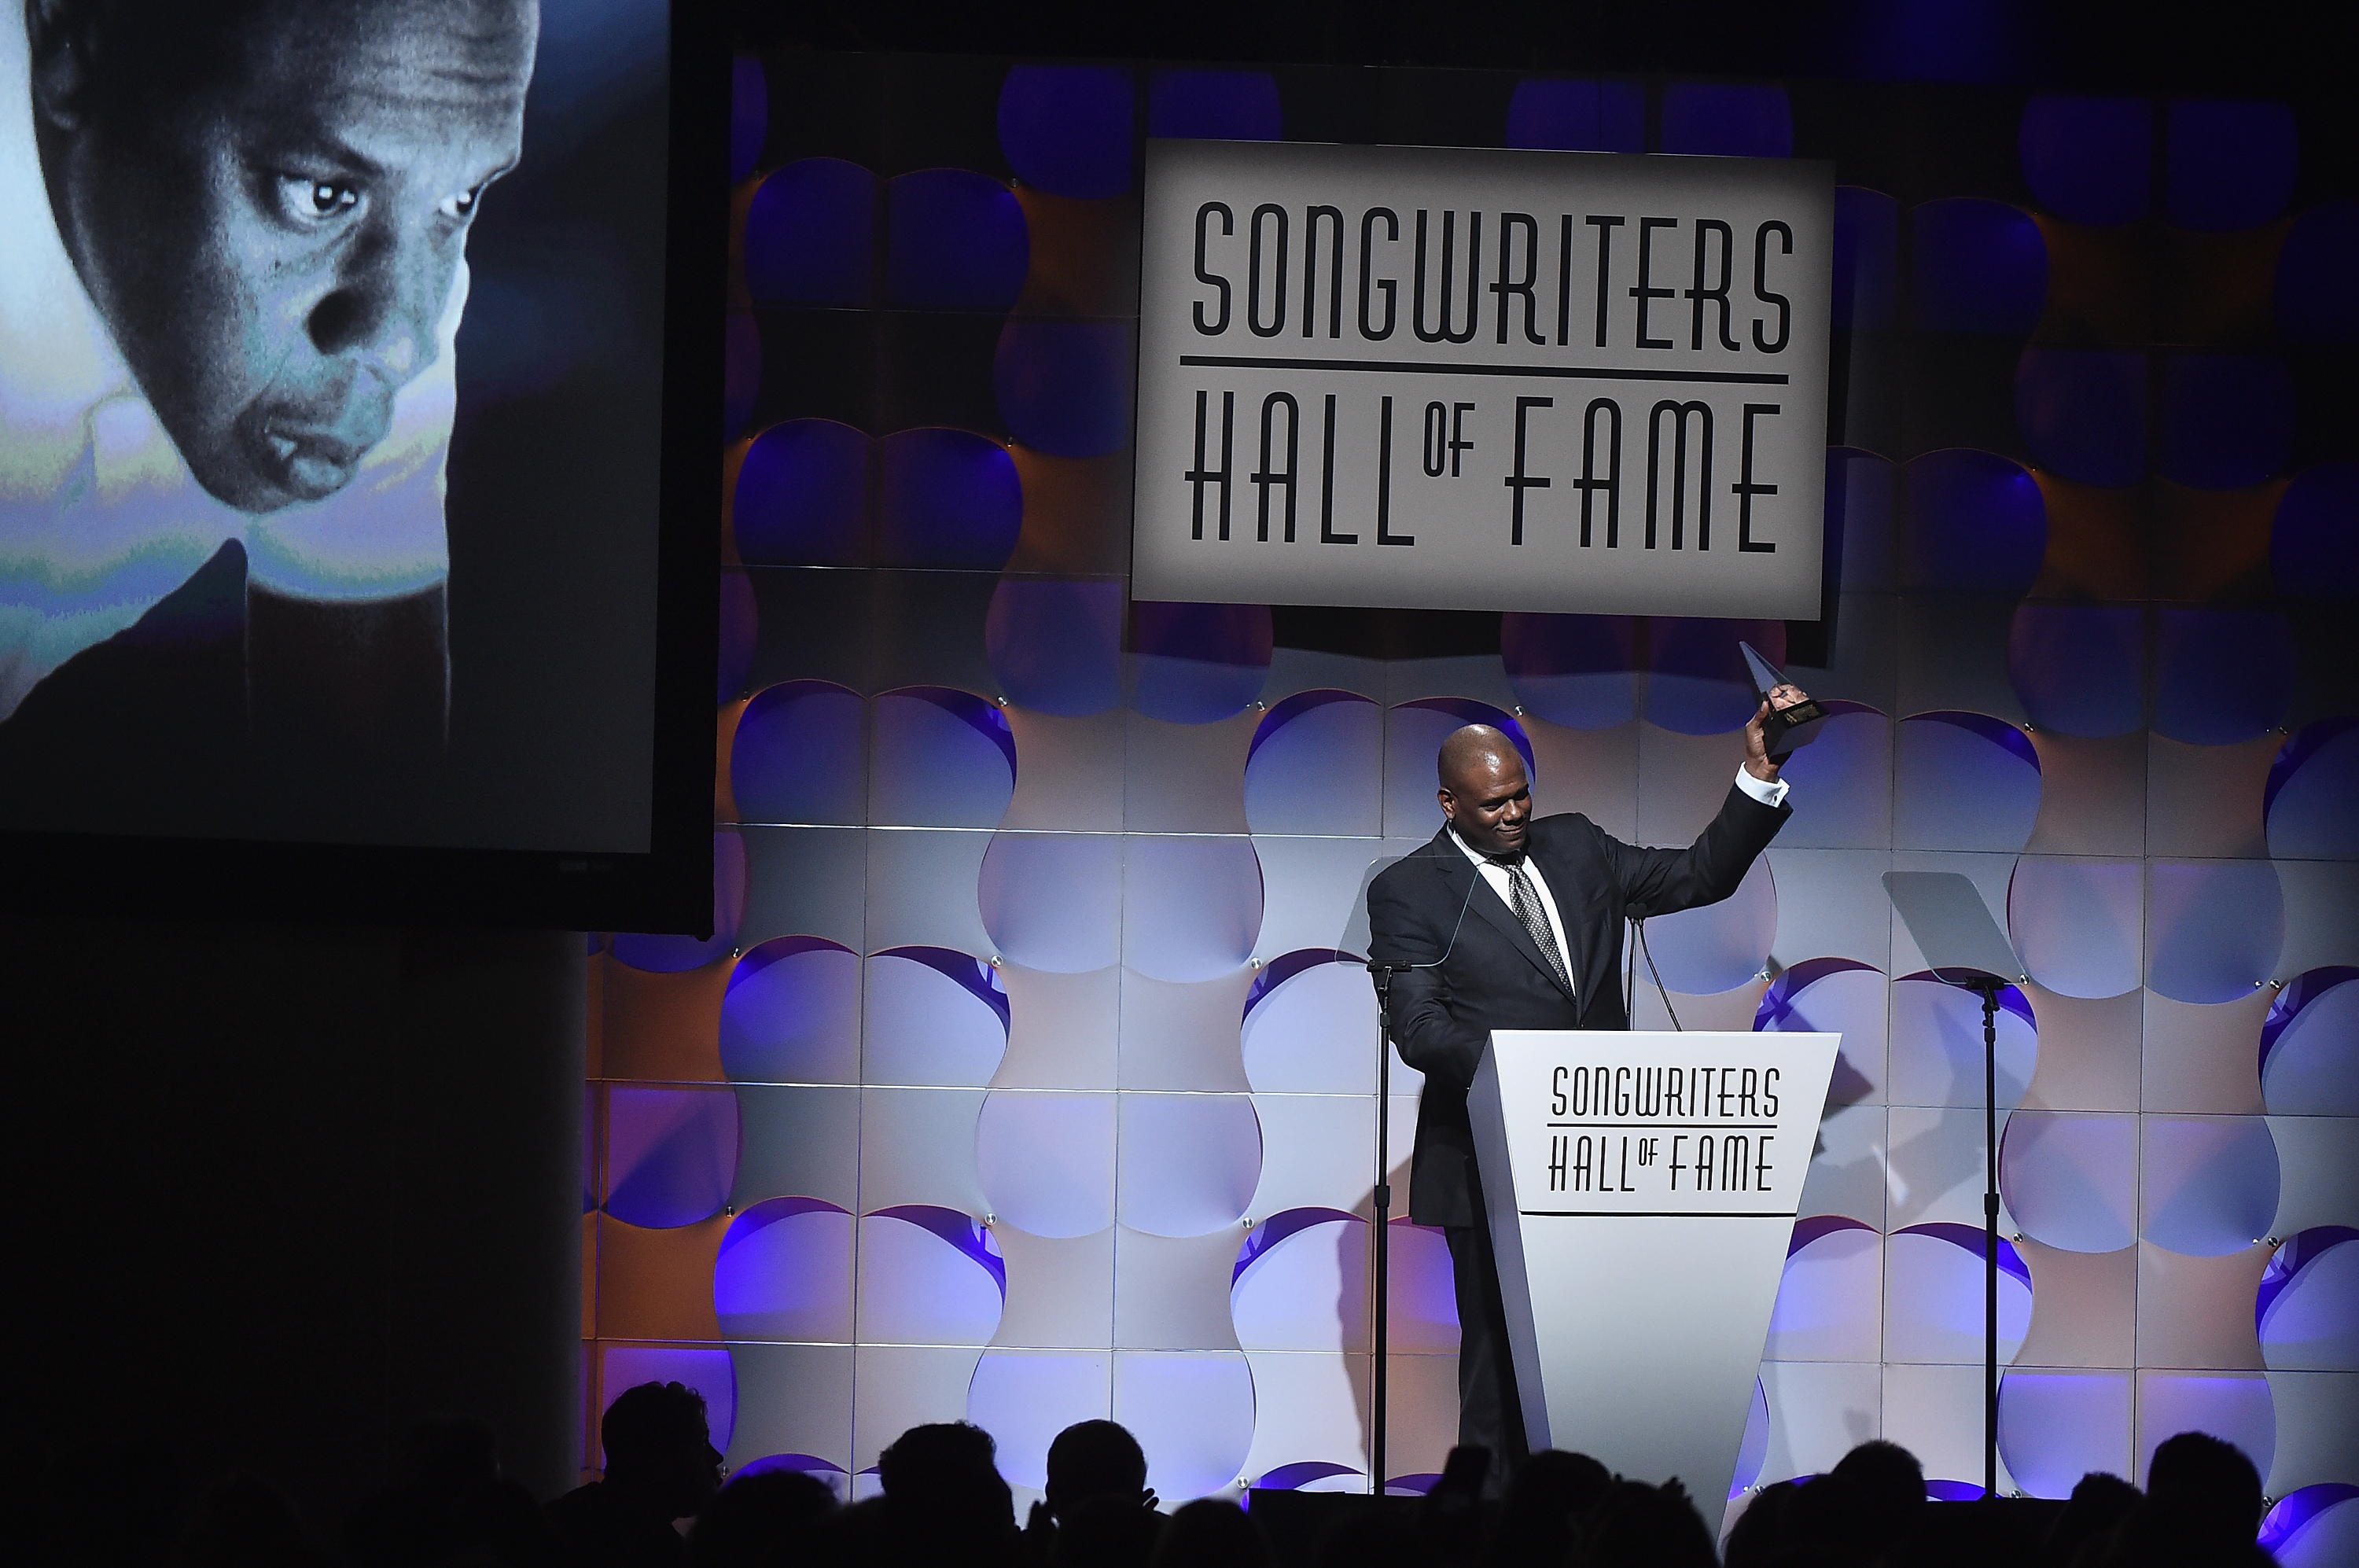 NEW YORK, NY - JUNE 15:  Warner/Chappell Music CEO Jon Platt speaks onstage at the Songwriters Hall Of Fame 48th Annual Induction and Awards at New York Marriott Marquis Hotel on June 15, 2017 in New York City.  (Photo by Theo Wargo/Getty Images for Songwriters Hall Of Fame) *** Local Caption *** Jon Platt